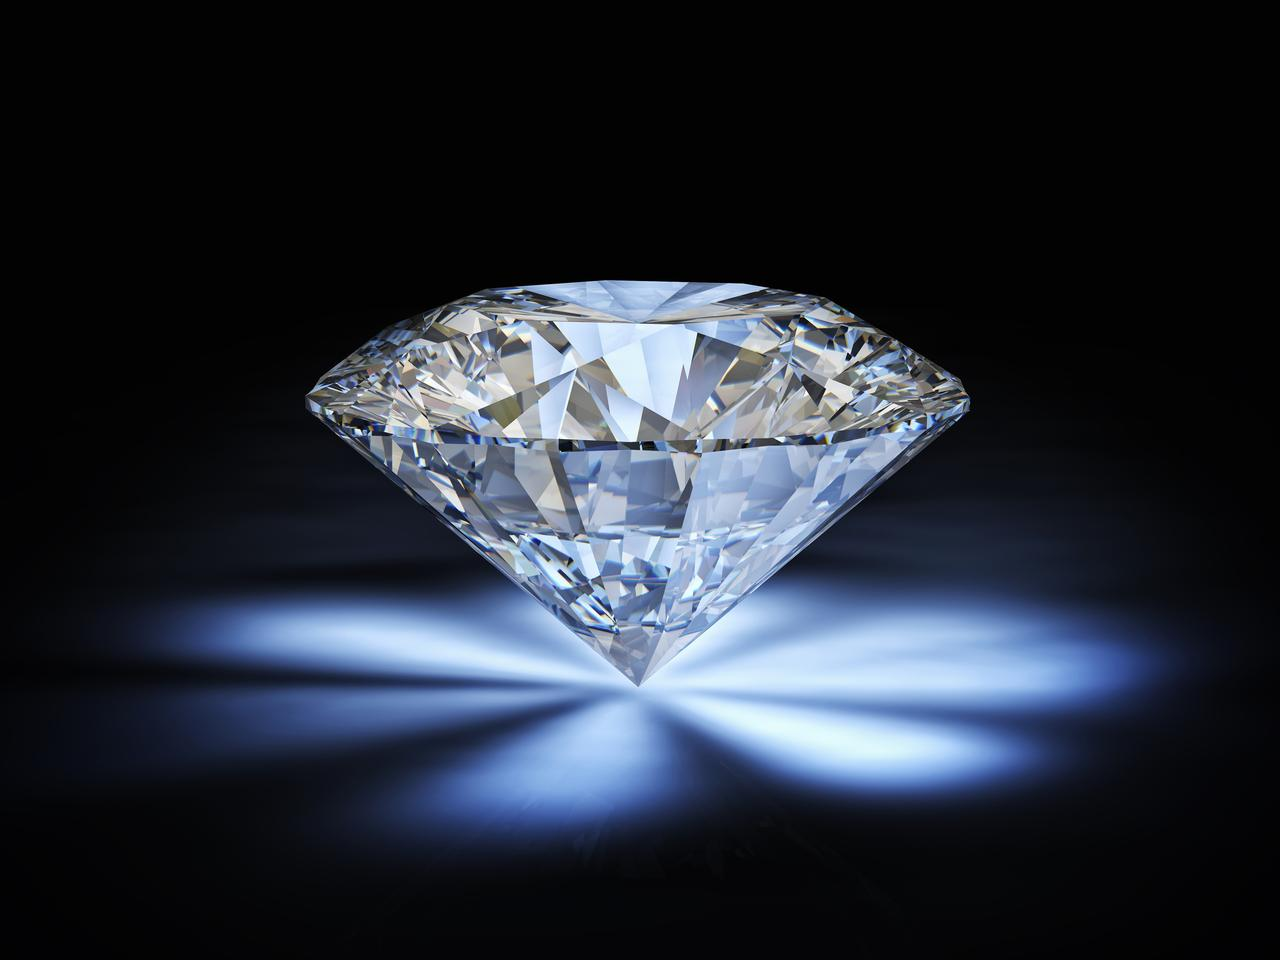 """Researchers have found that it should be possible to """"metallize"""" diamond, which could find a variety of uses in electronic devices"""